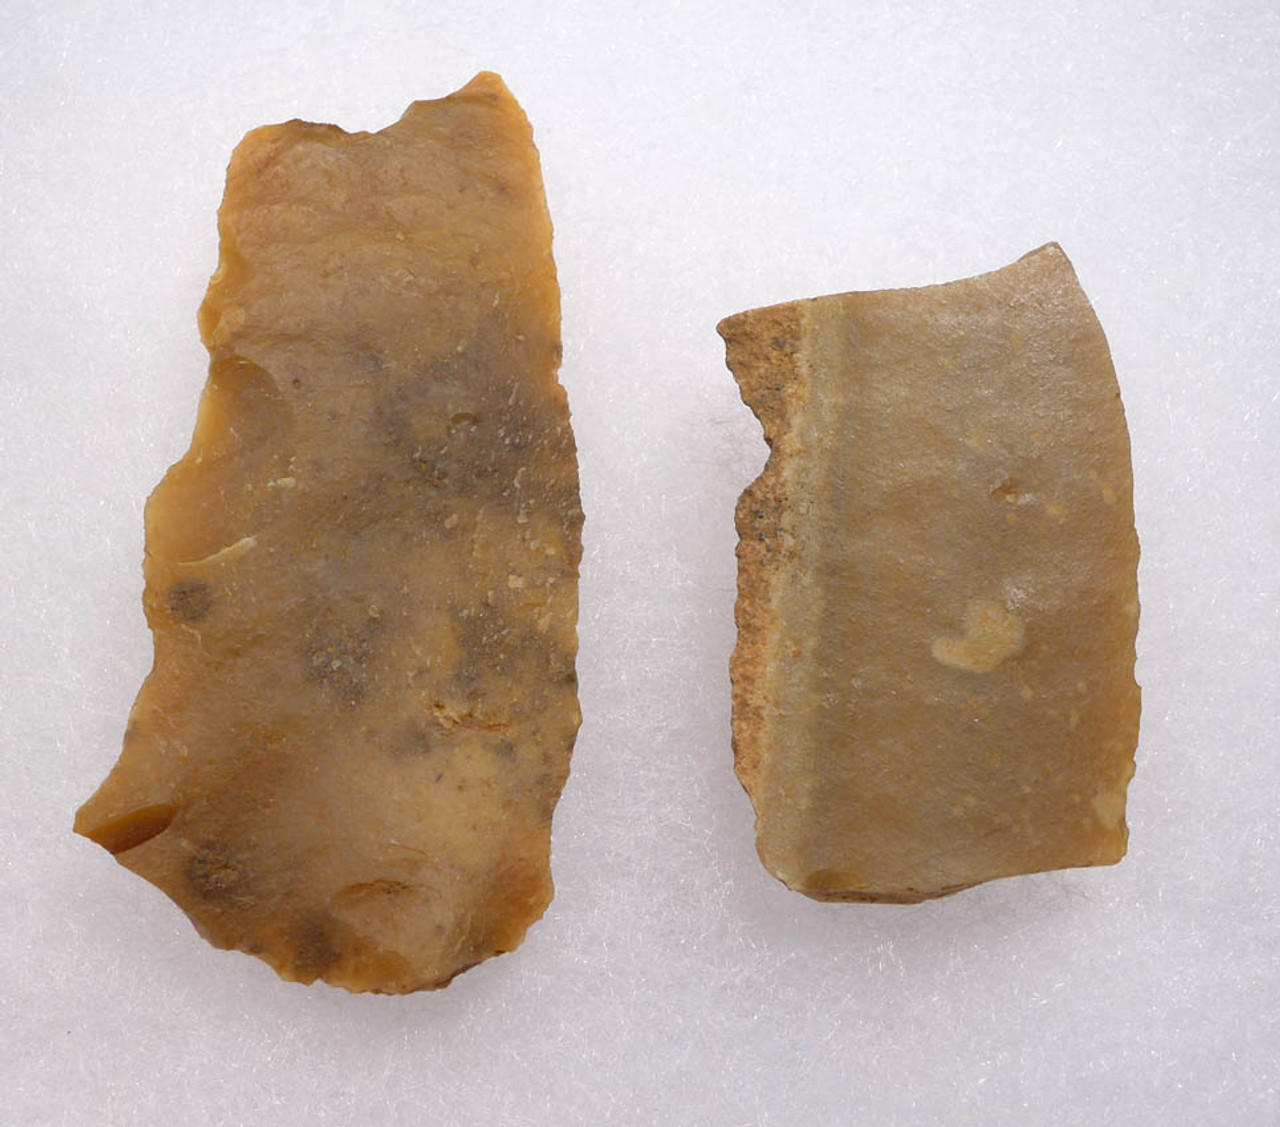 UP029 - TWO AURIGNACIAN CRO-MAGNON BLADE KNIFE FLAKE TOOLS FROM FRANCE